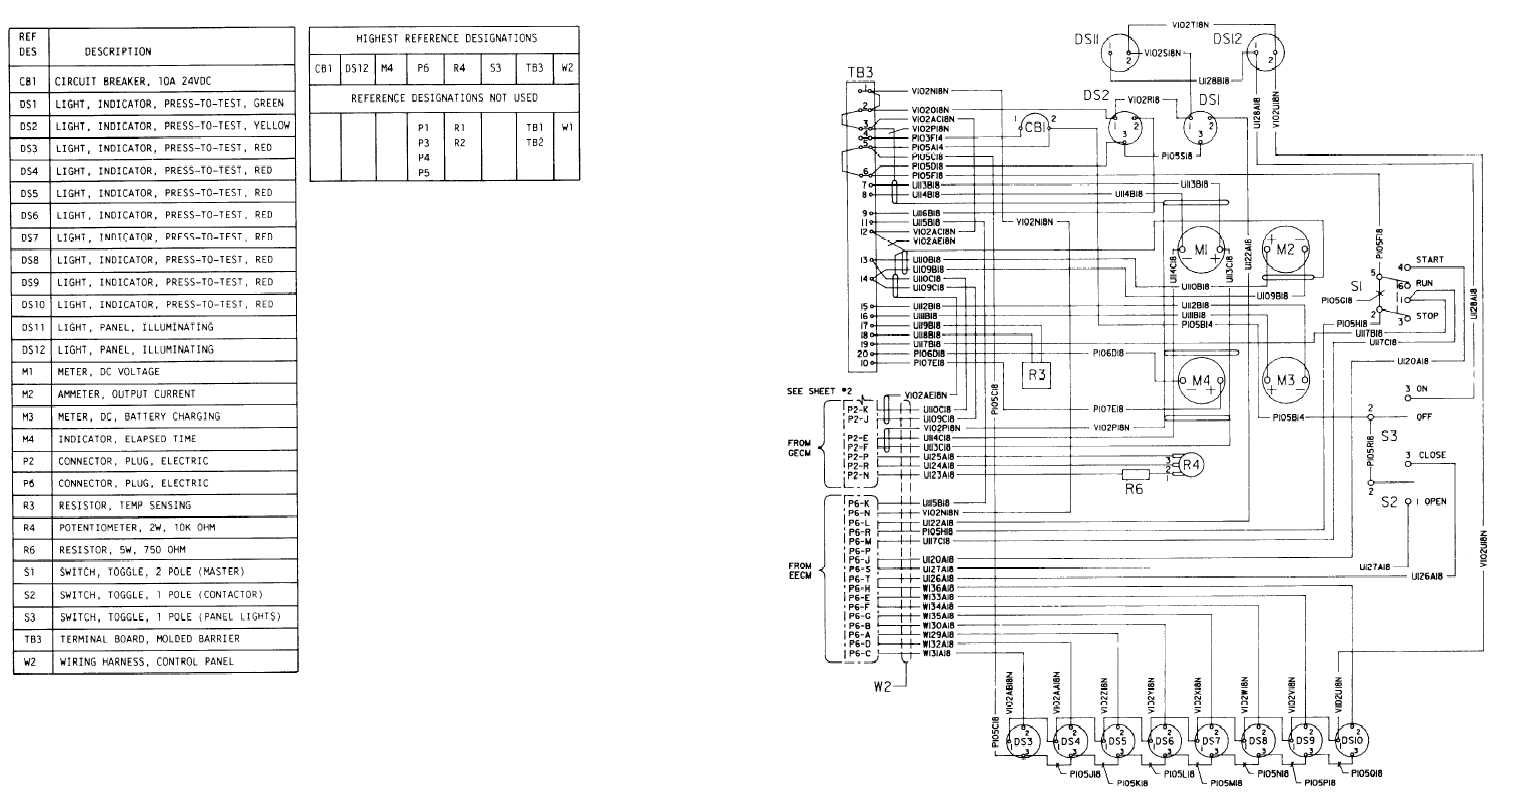 fire alarm control panel wiring diagram for electrical control fire alarm panel wiring diagram fire alarm [ 1528 x 808 Pixel ]